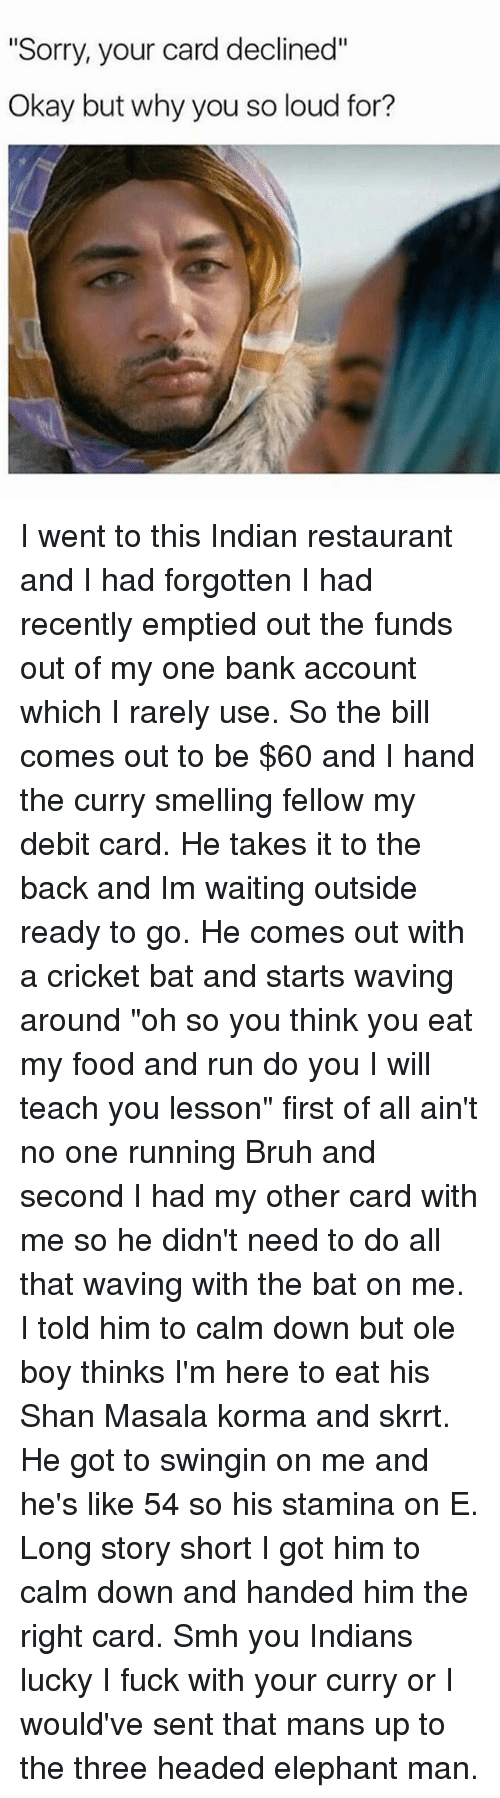 """Cricket, Black Twitter, and Oled: """"Sorry, your card declined""""  Okay but why you so loud for? I went to this Indian restaurant and I had forgotten I had recently emptied out the funds out of my one bank account which I rarely use. So the bill comes out to be $60 and I hand the curry smelling fellow my debit card. He takes it to the back and Im waiting outside ready to go. He comes out with a cricket bat and starts waving around """"oh so you think you eat my food and run do you I will teach you lesson"""" first of all ain't no one running Bruh and second I had my other card with me so he didn't need to do all that waving with the bat on me. I told him to calm down but ole boy thinks I'm here to eat his Shan Masala korma and skrrt. He got to swingin on me and he's like 54 so his stamina on E. Long story short I got him to calm down and handed him the right card. Smh you Indians lucky I fuck with your curry or I would've sent that mans up to the three headed elephant man."""